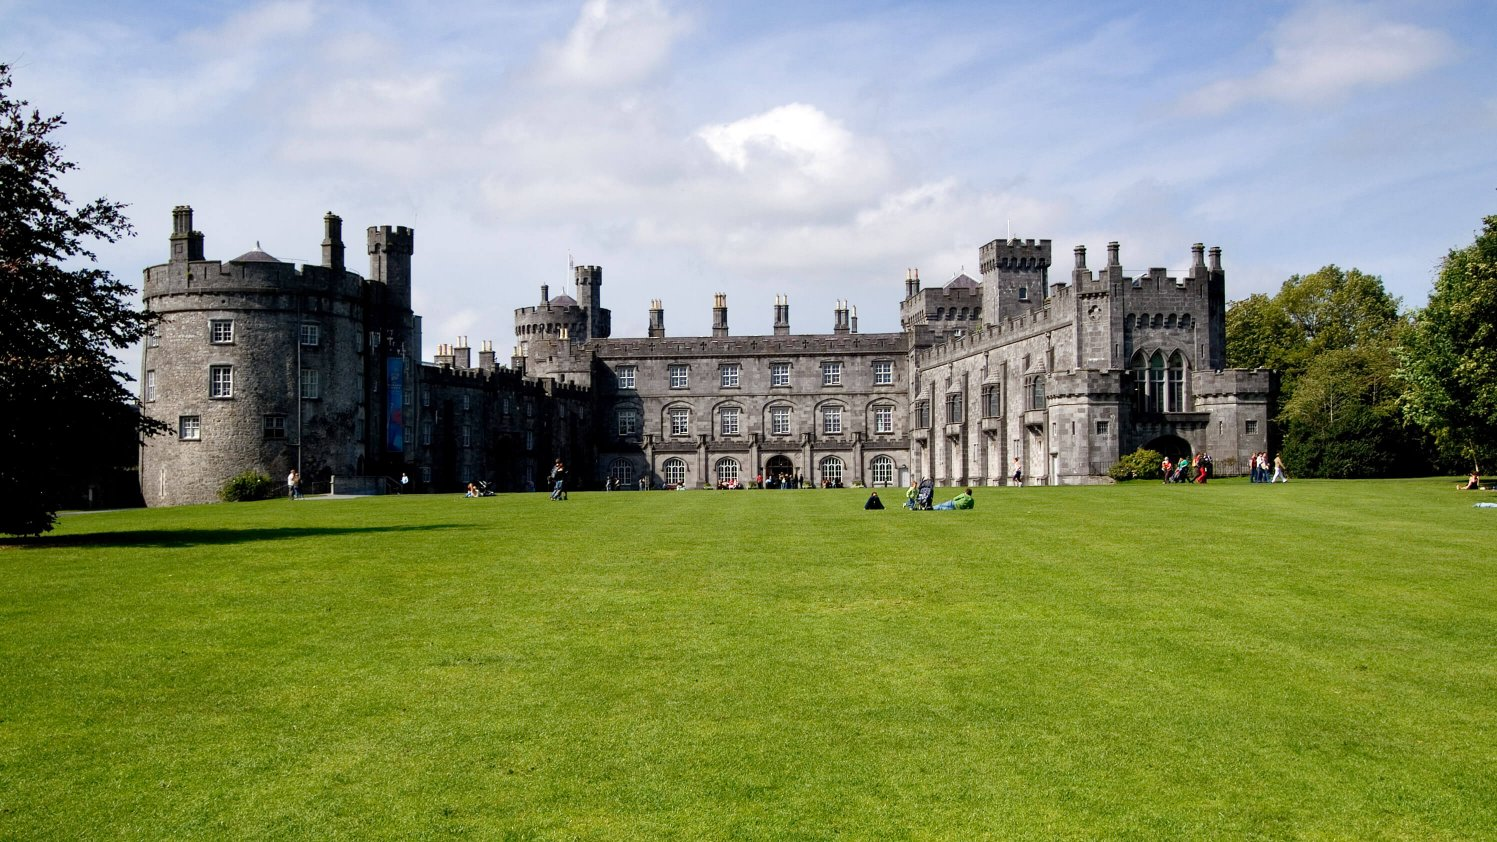 Exterior of Kilkenny Castle with lawn